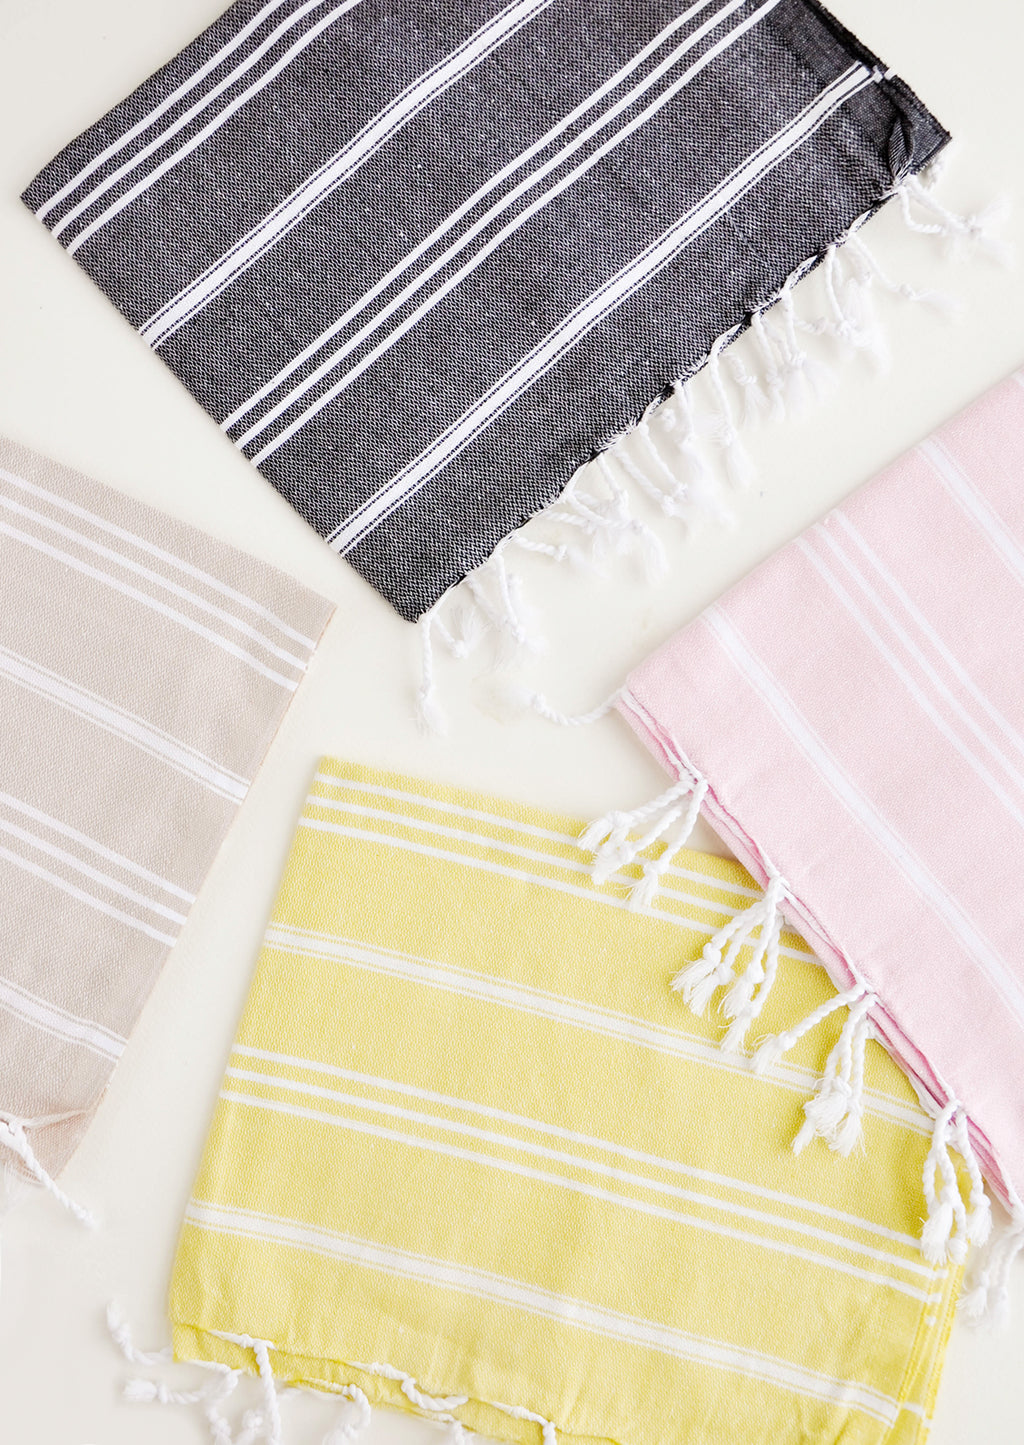 1: Colorful towels with white stripes in a variety of colors